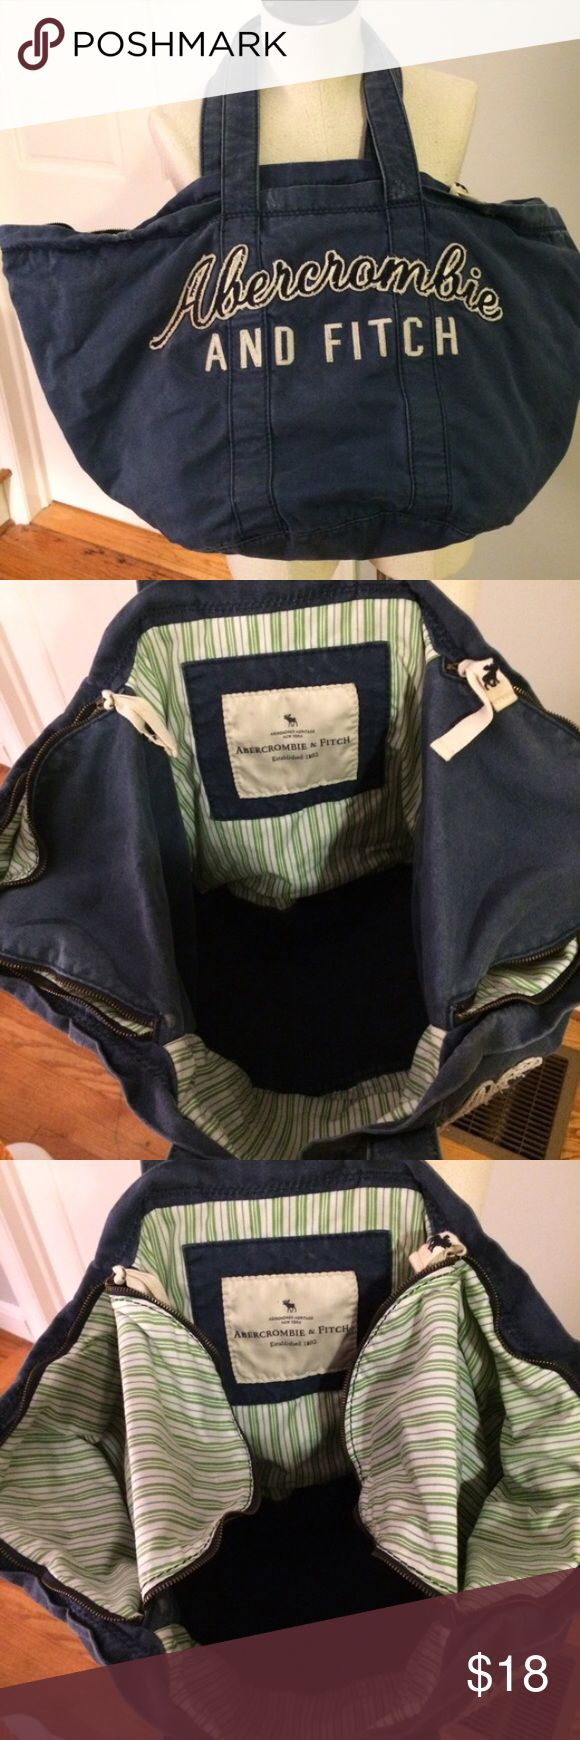 ✅5 for $35 Large Abercrombie and Fitch tote bag Large Abercrombie and Fitch tote bag Abercrombie & Fitch Bags Totes